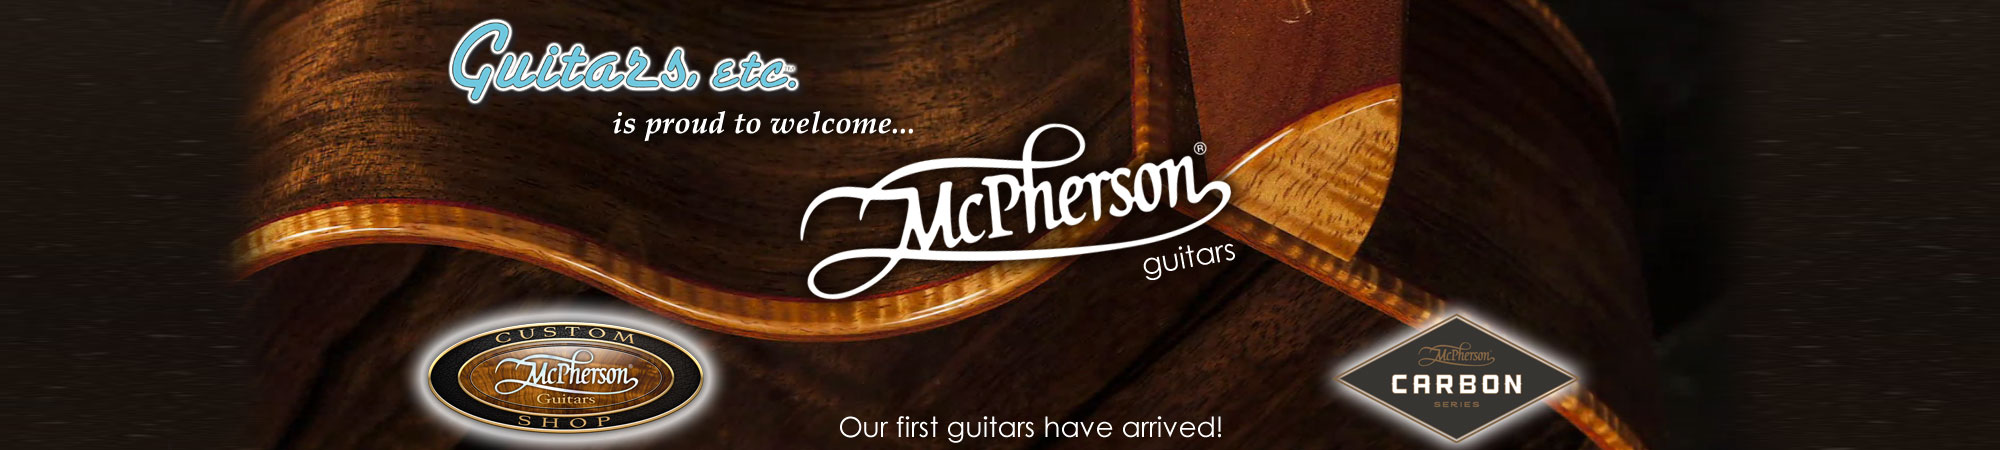 McPherson guitars are coming soon!